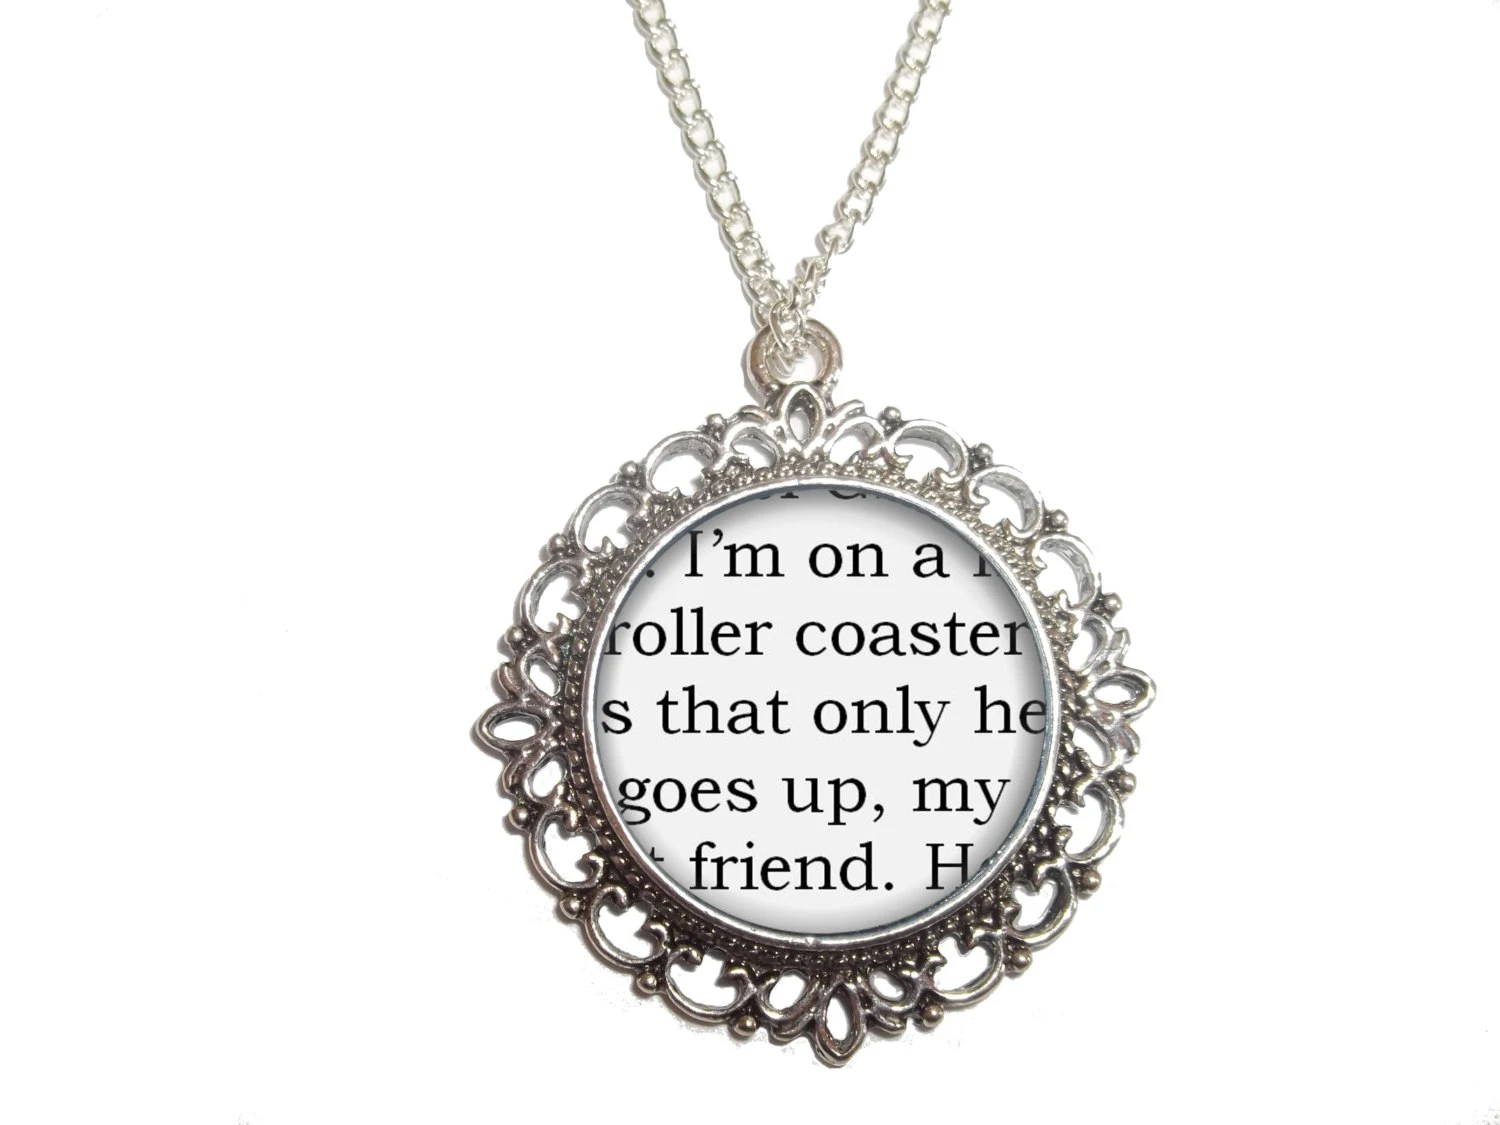 The Fault in Our Stars Necklace 'I'm on a by AnSeanchai on